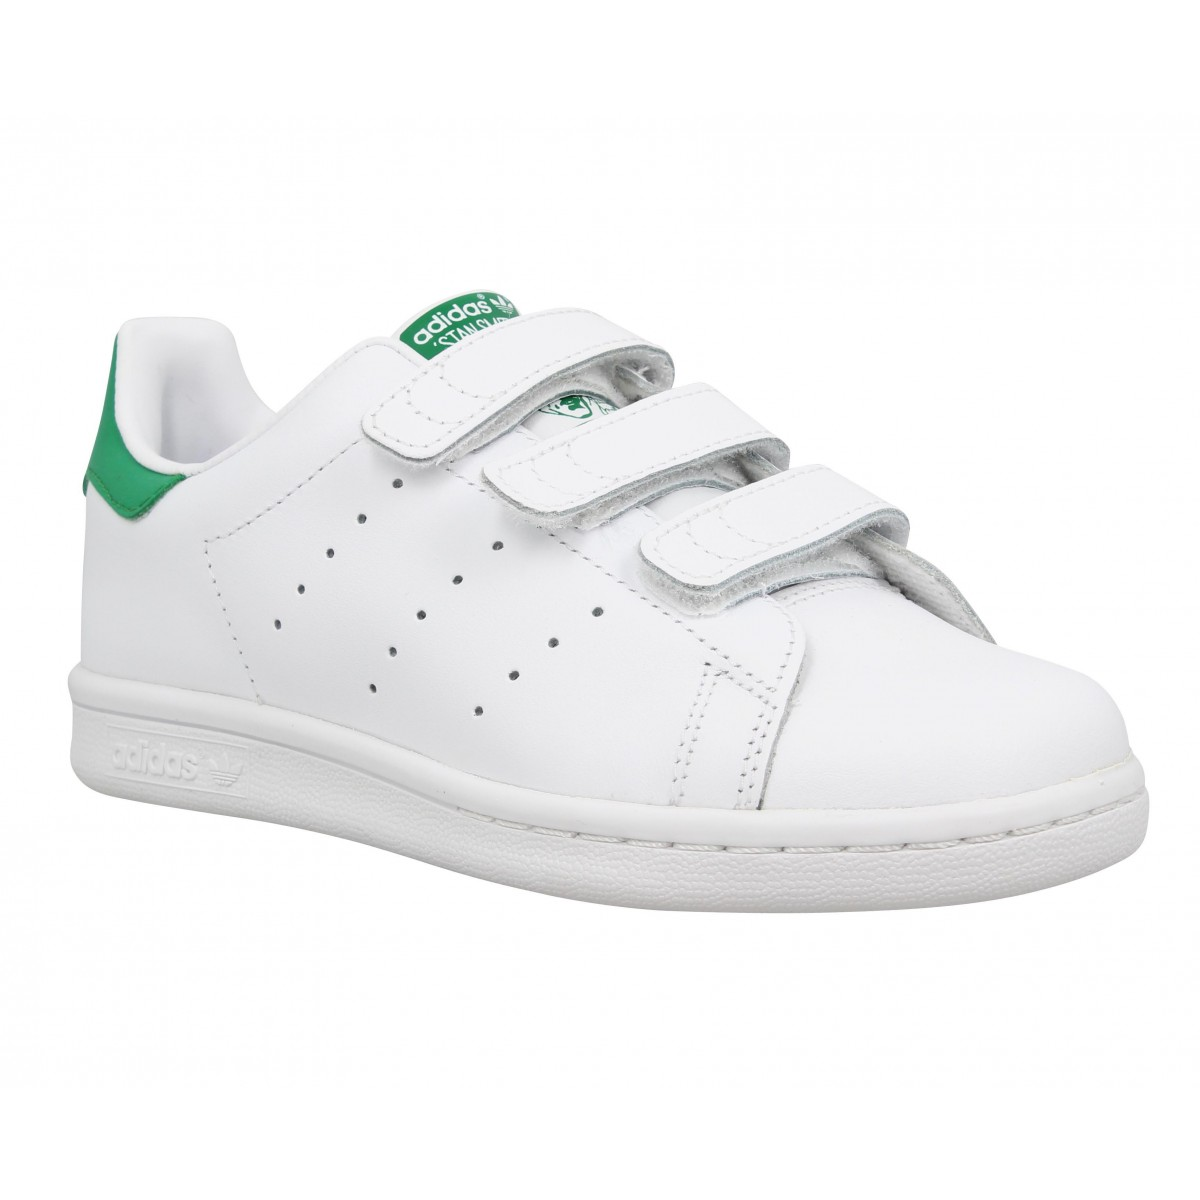 Baskets ADIDAS Stan Smith II cuir Enfant Blanc Vert